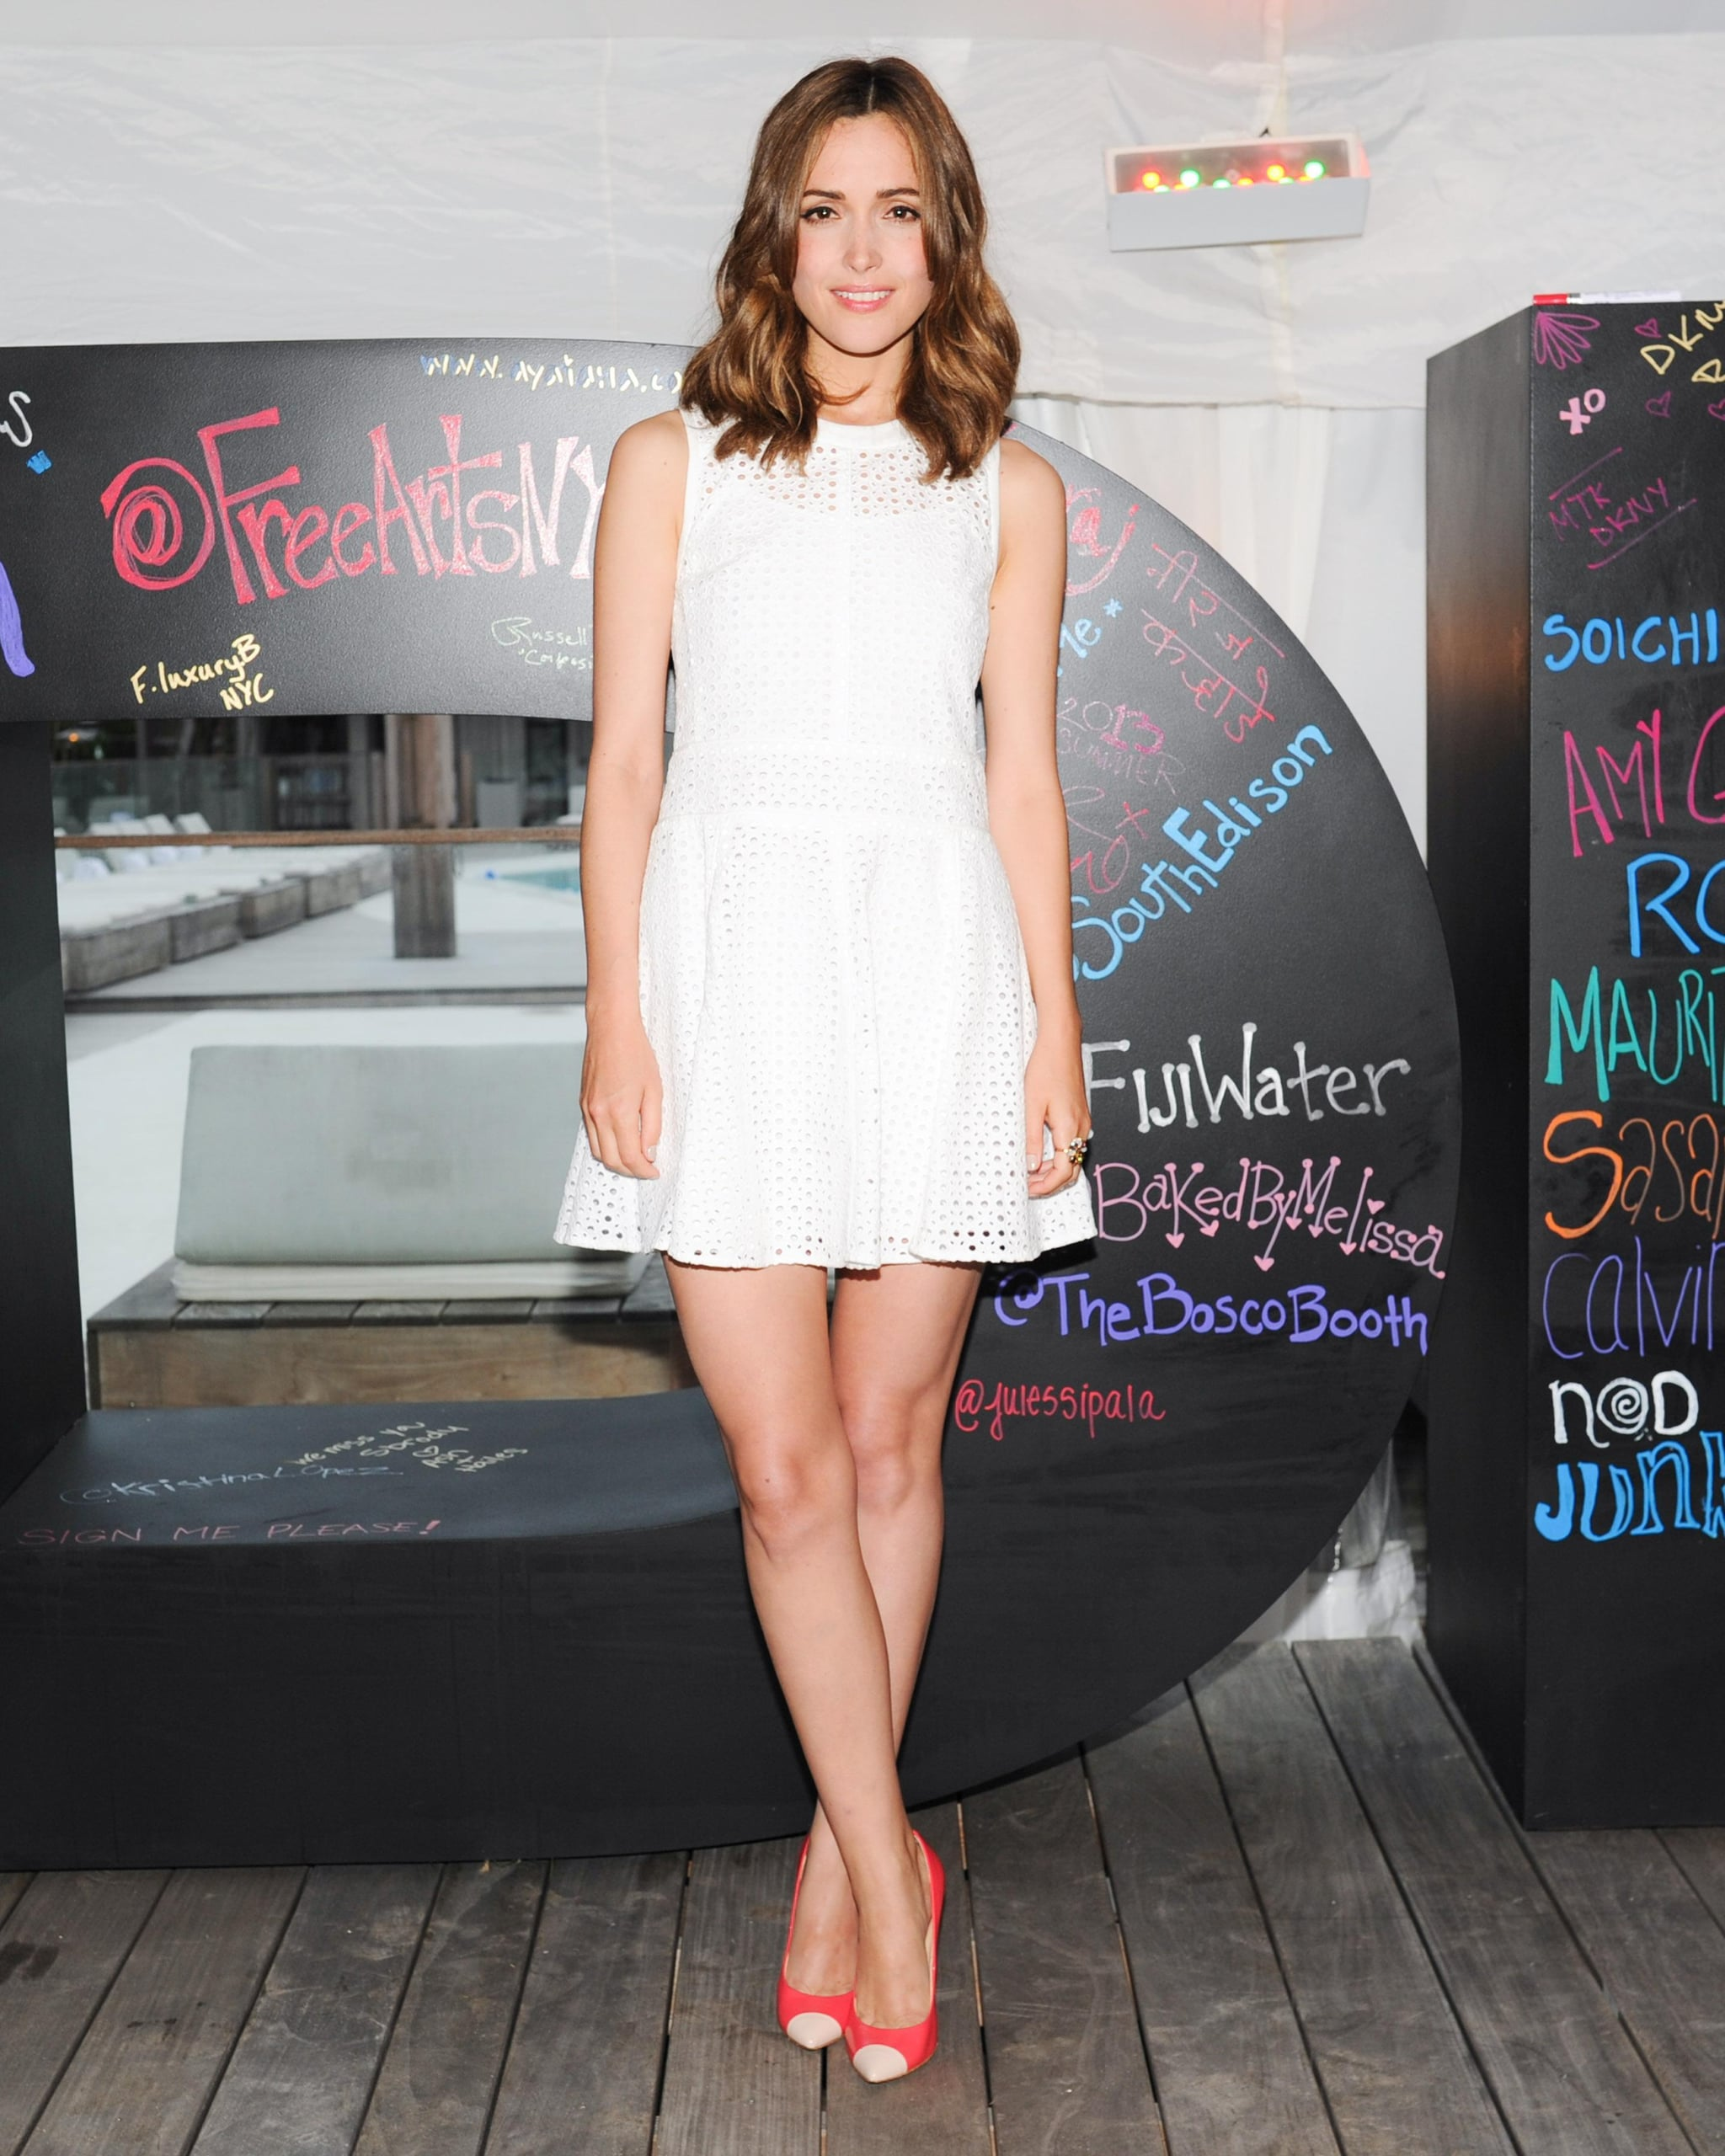 Life was a beach for Rose Byrne at the #DKNYARTWORKS and Free Arts NYC Charity Auction in Montauk.